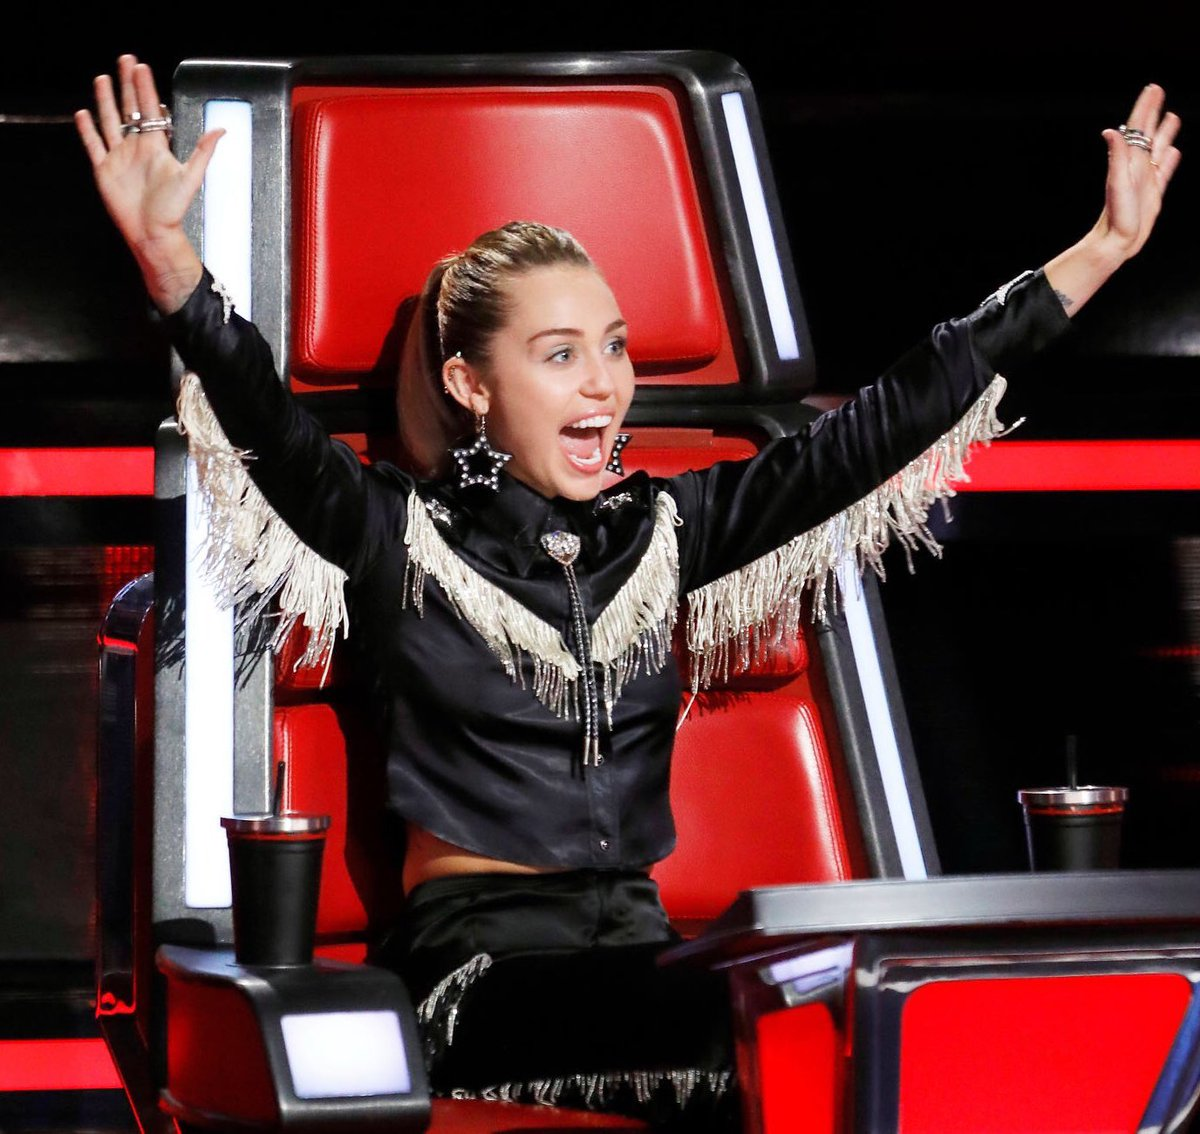 When you remember @nbcthevoice is on tonight and tomorrow! ❤️ #TeamMiley https://t.co/36CgVFhgqs